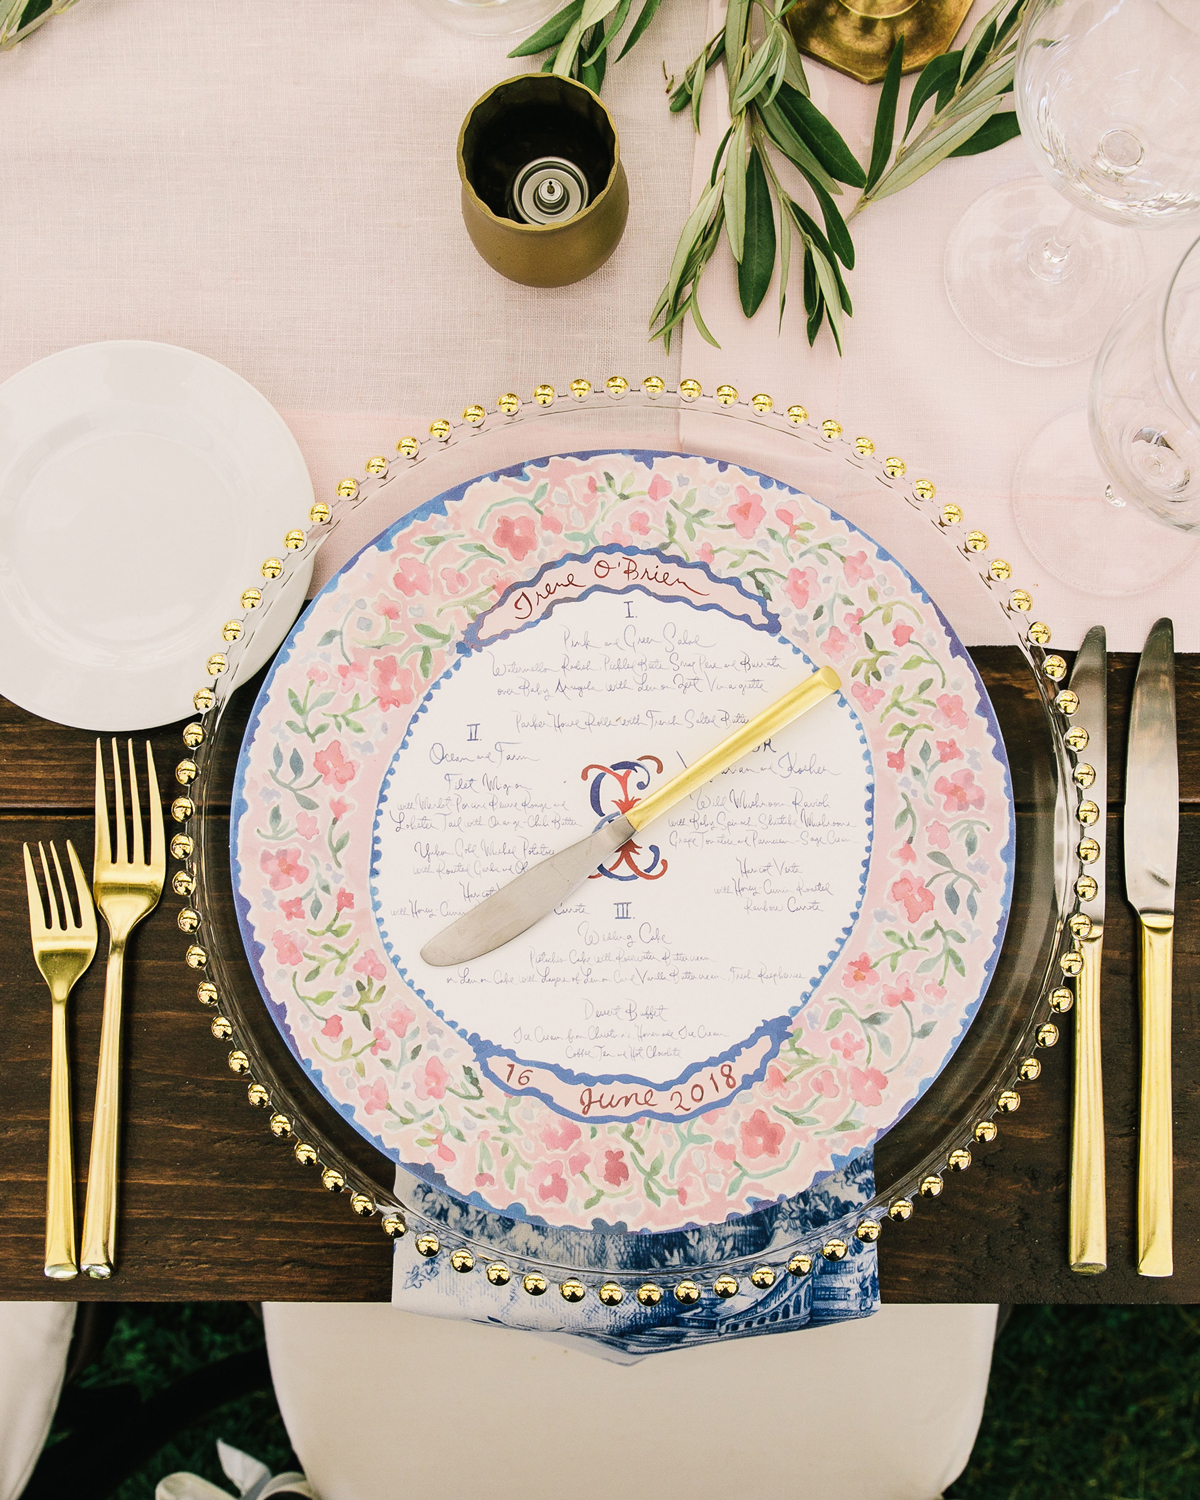 table settings featuring pink linens, blue candles, and gold dishware